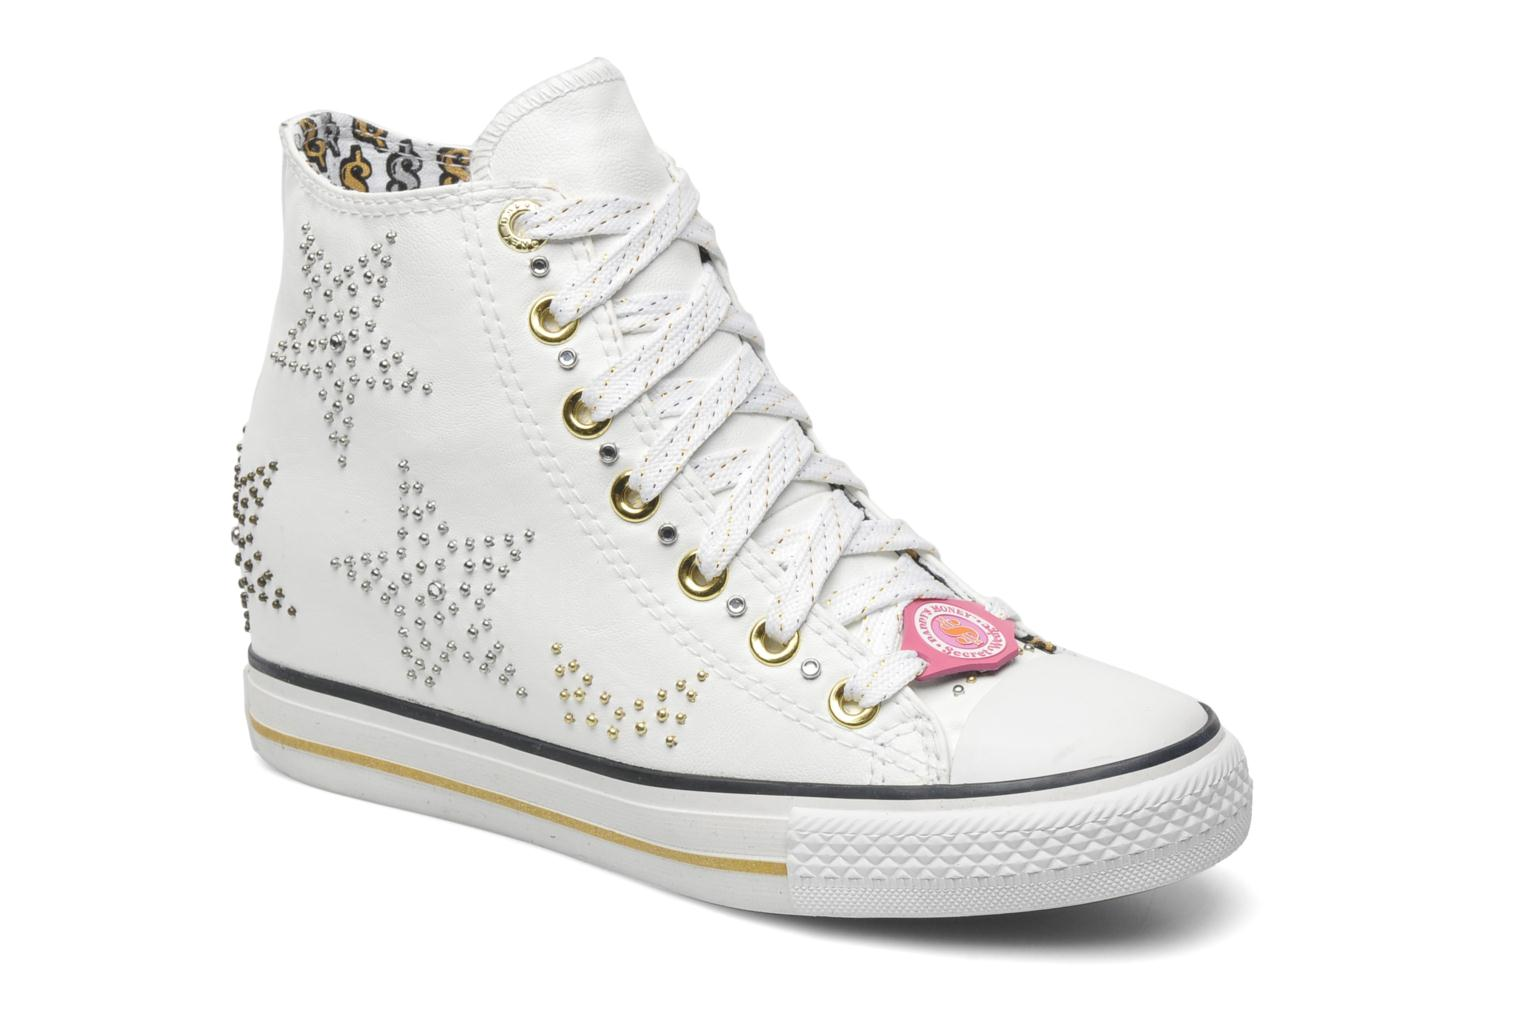 Deportivas Skechers Daddy's money - Stargazing 39419 Blanco vista de detalle / par